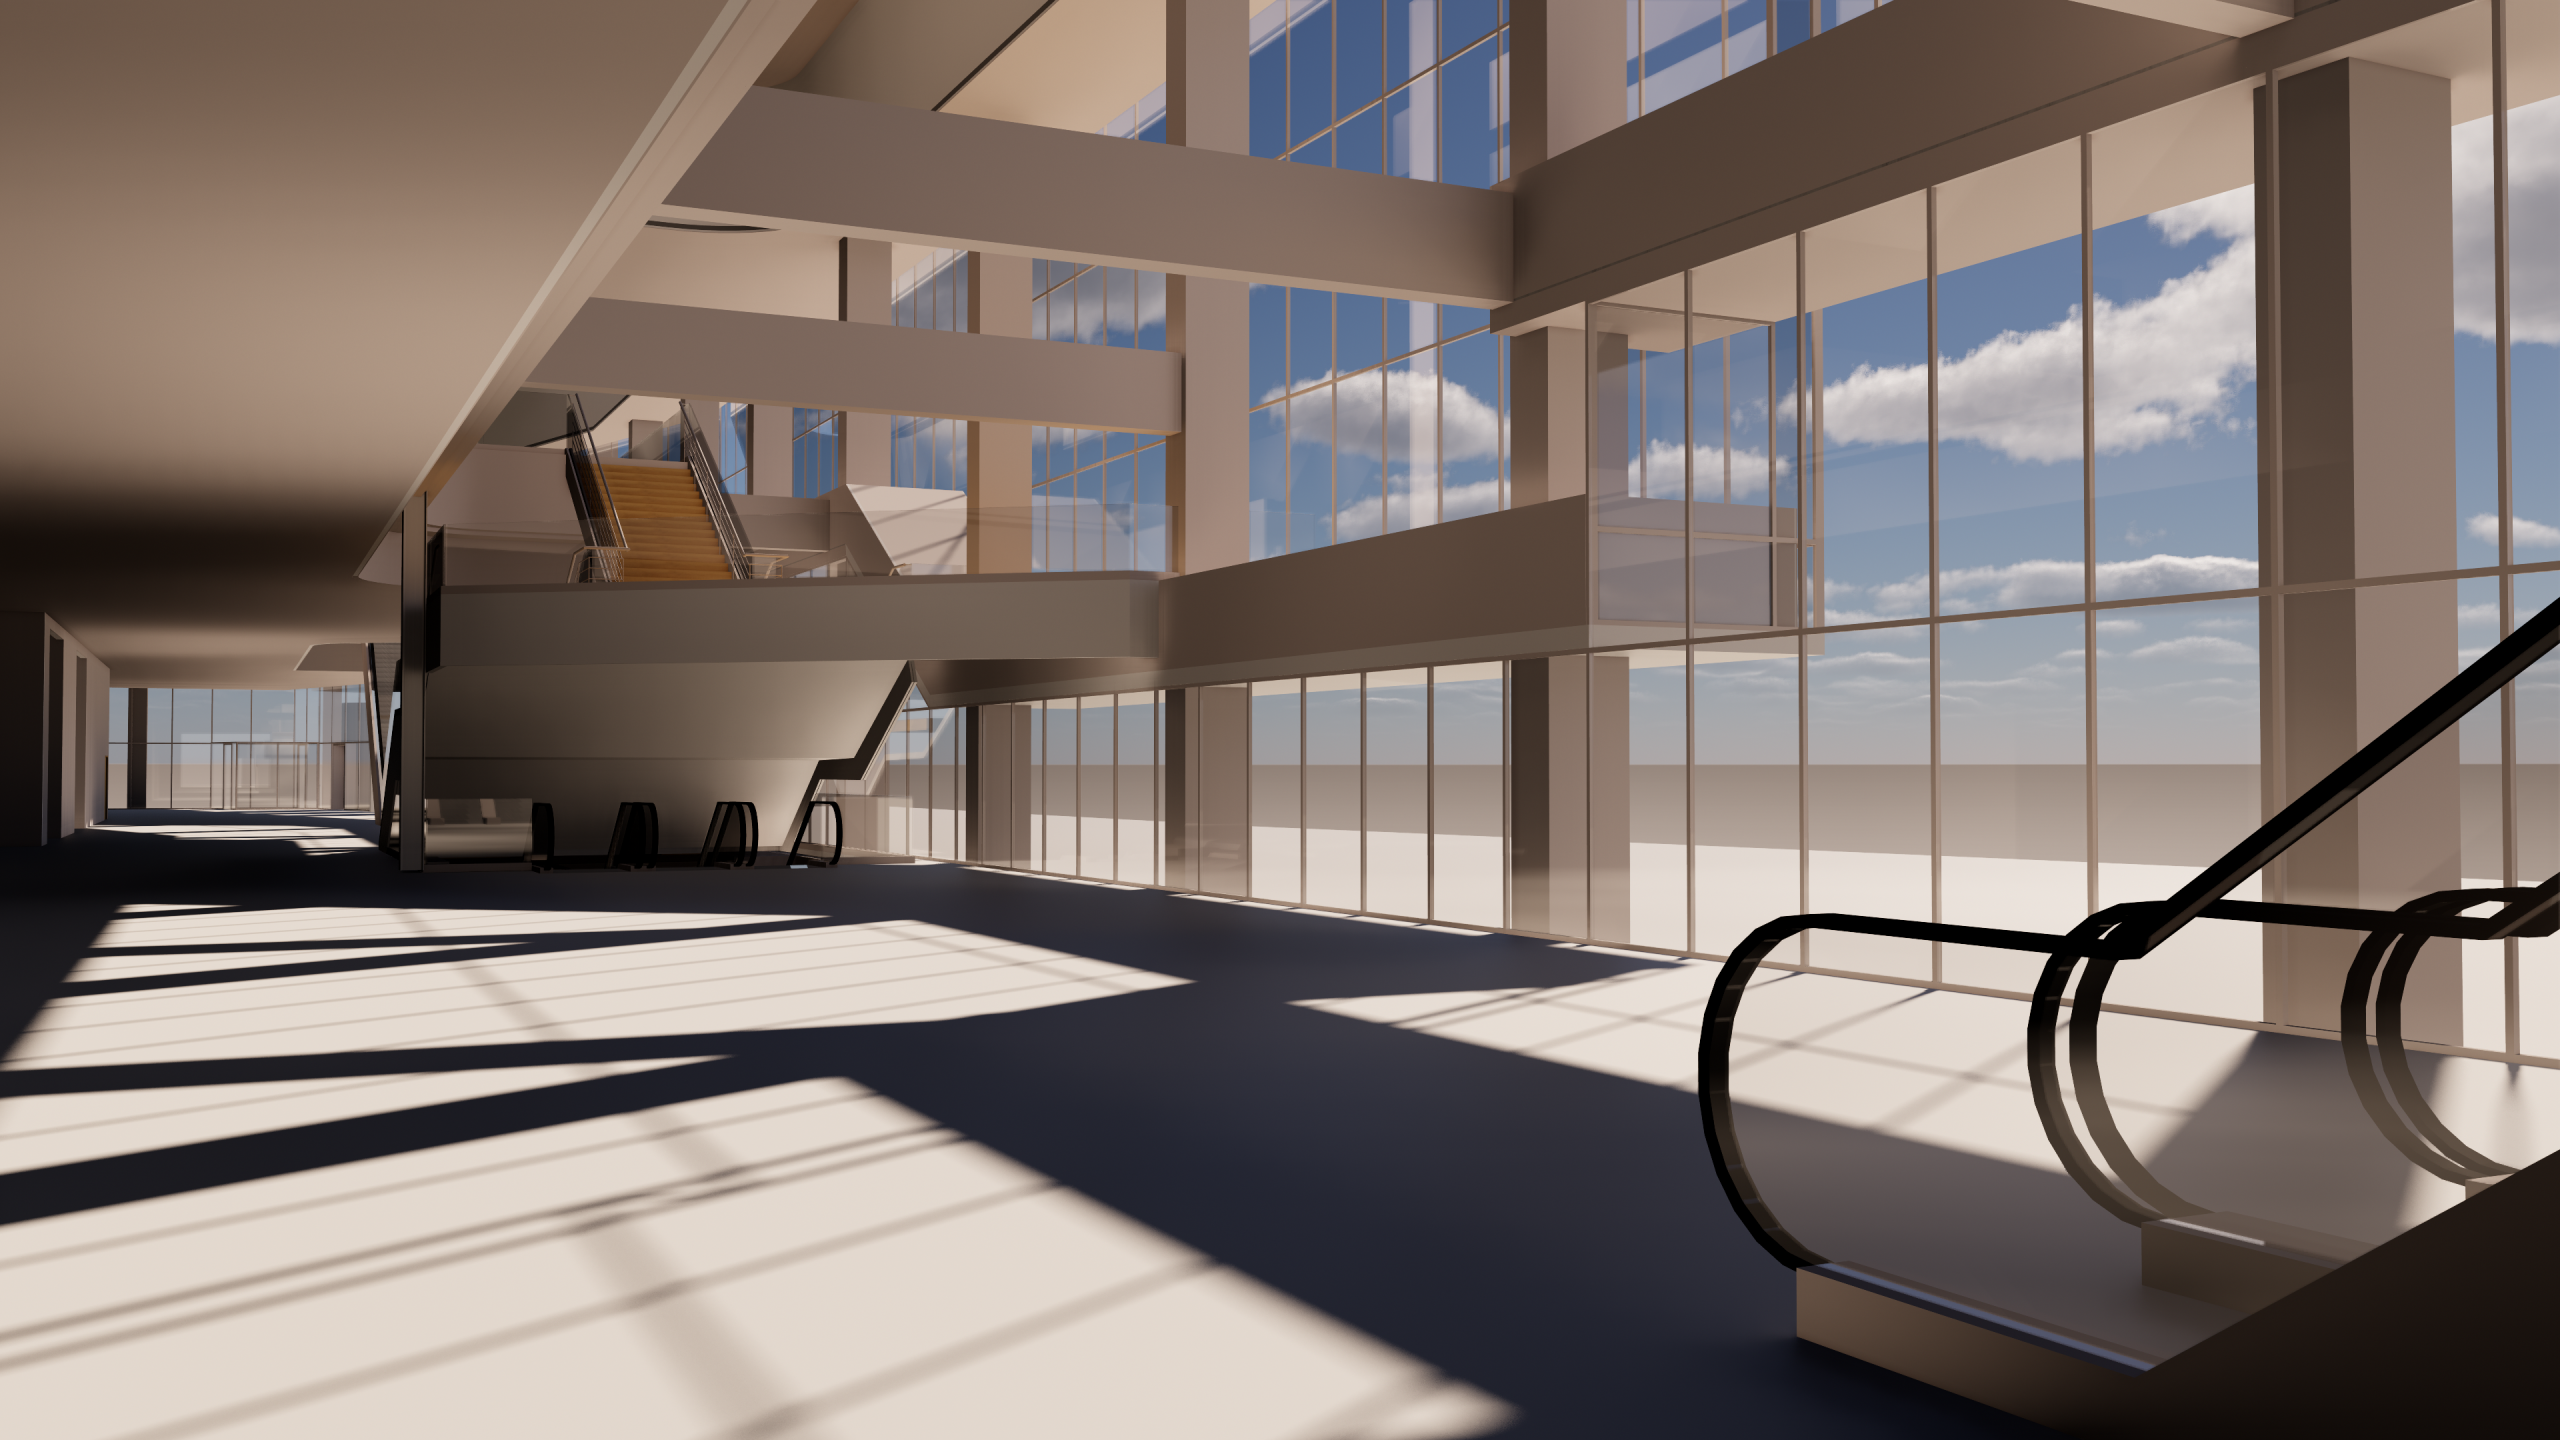 Render in real-time with the Enscape and BricsCAD integration. Image credit: HOK